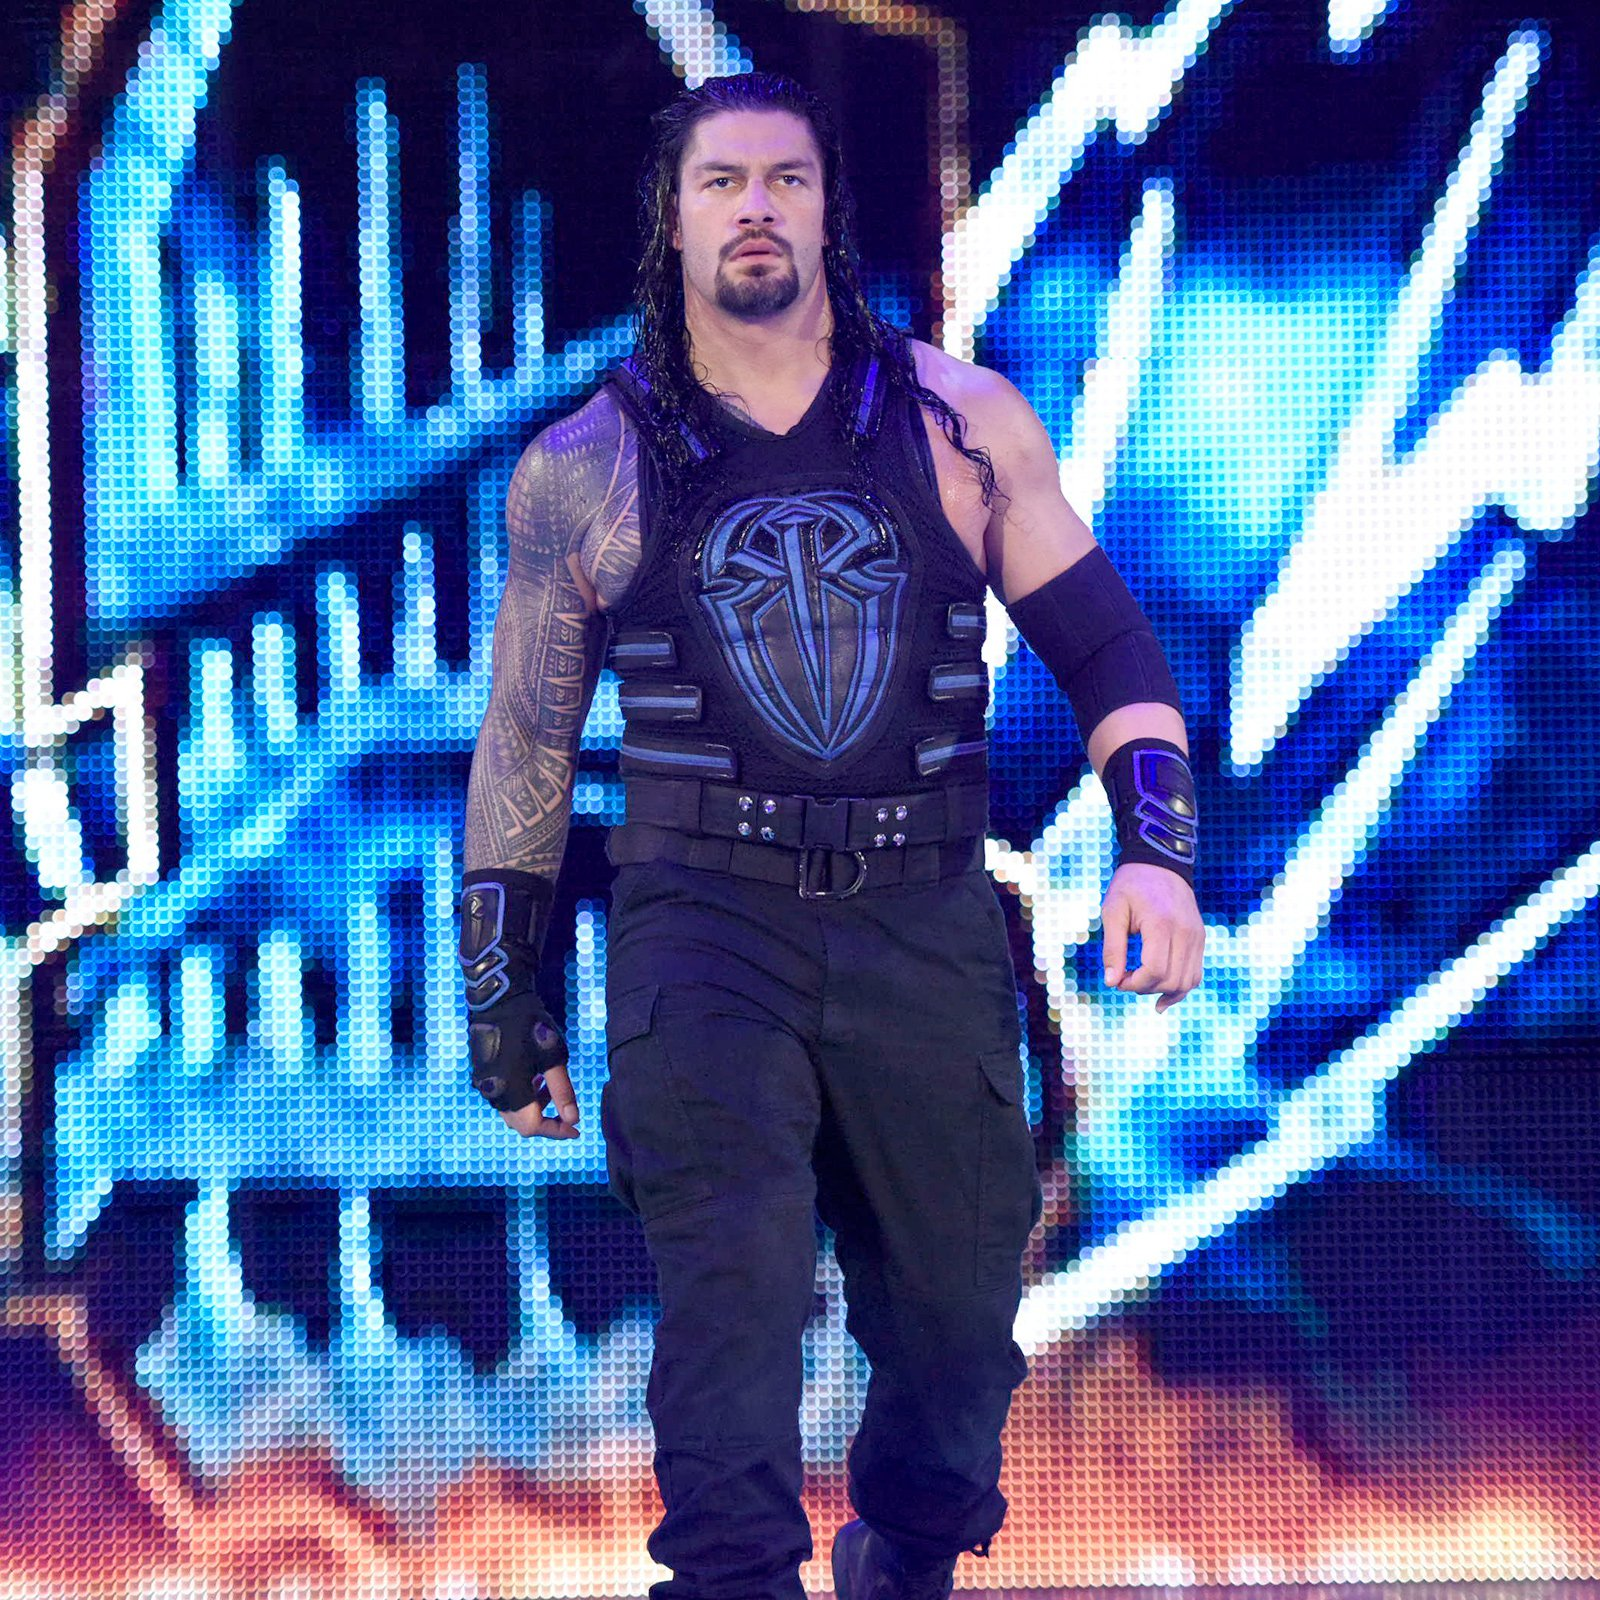 The Big Dog stares daggers through his nemesis on his way to the squared circle.